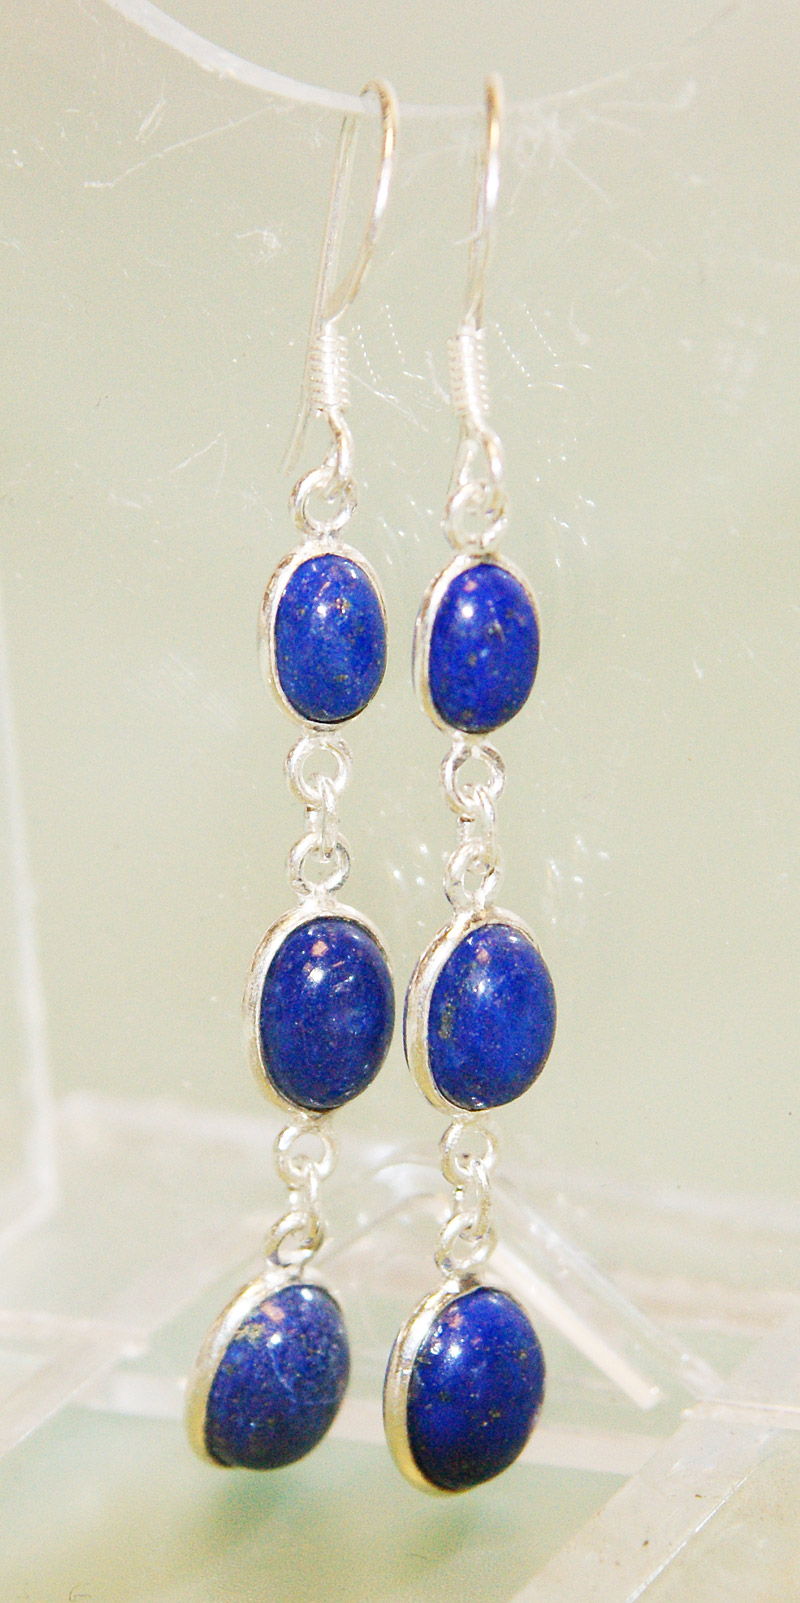 item with lazuli queen shop needlework isitnofret square istnofret bead blue lapis egyptian earrings